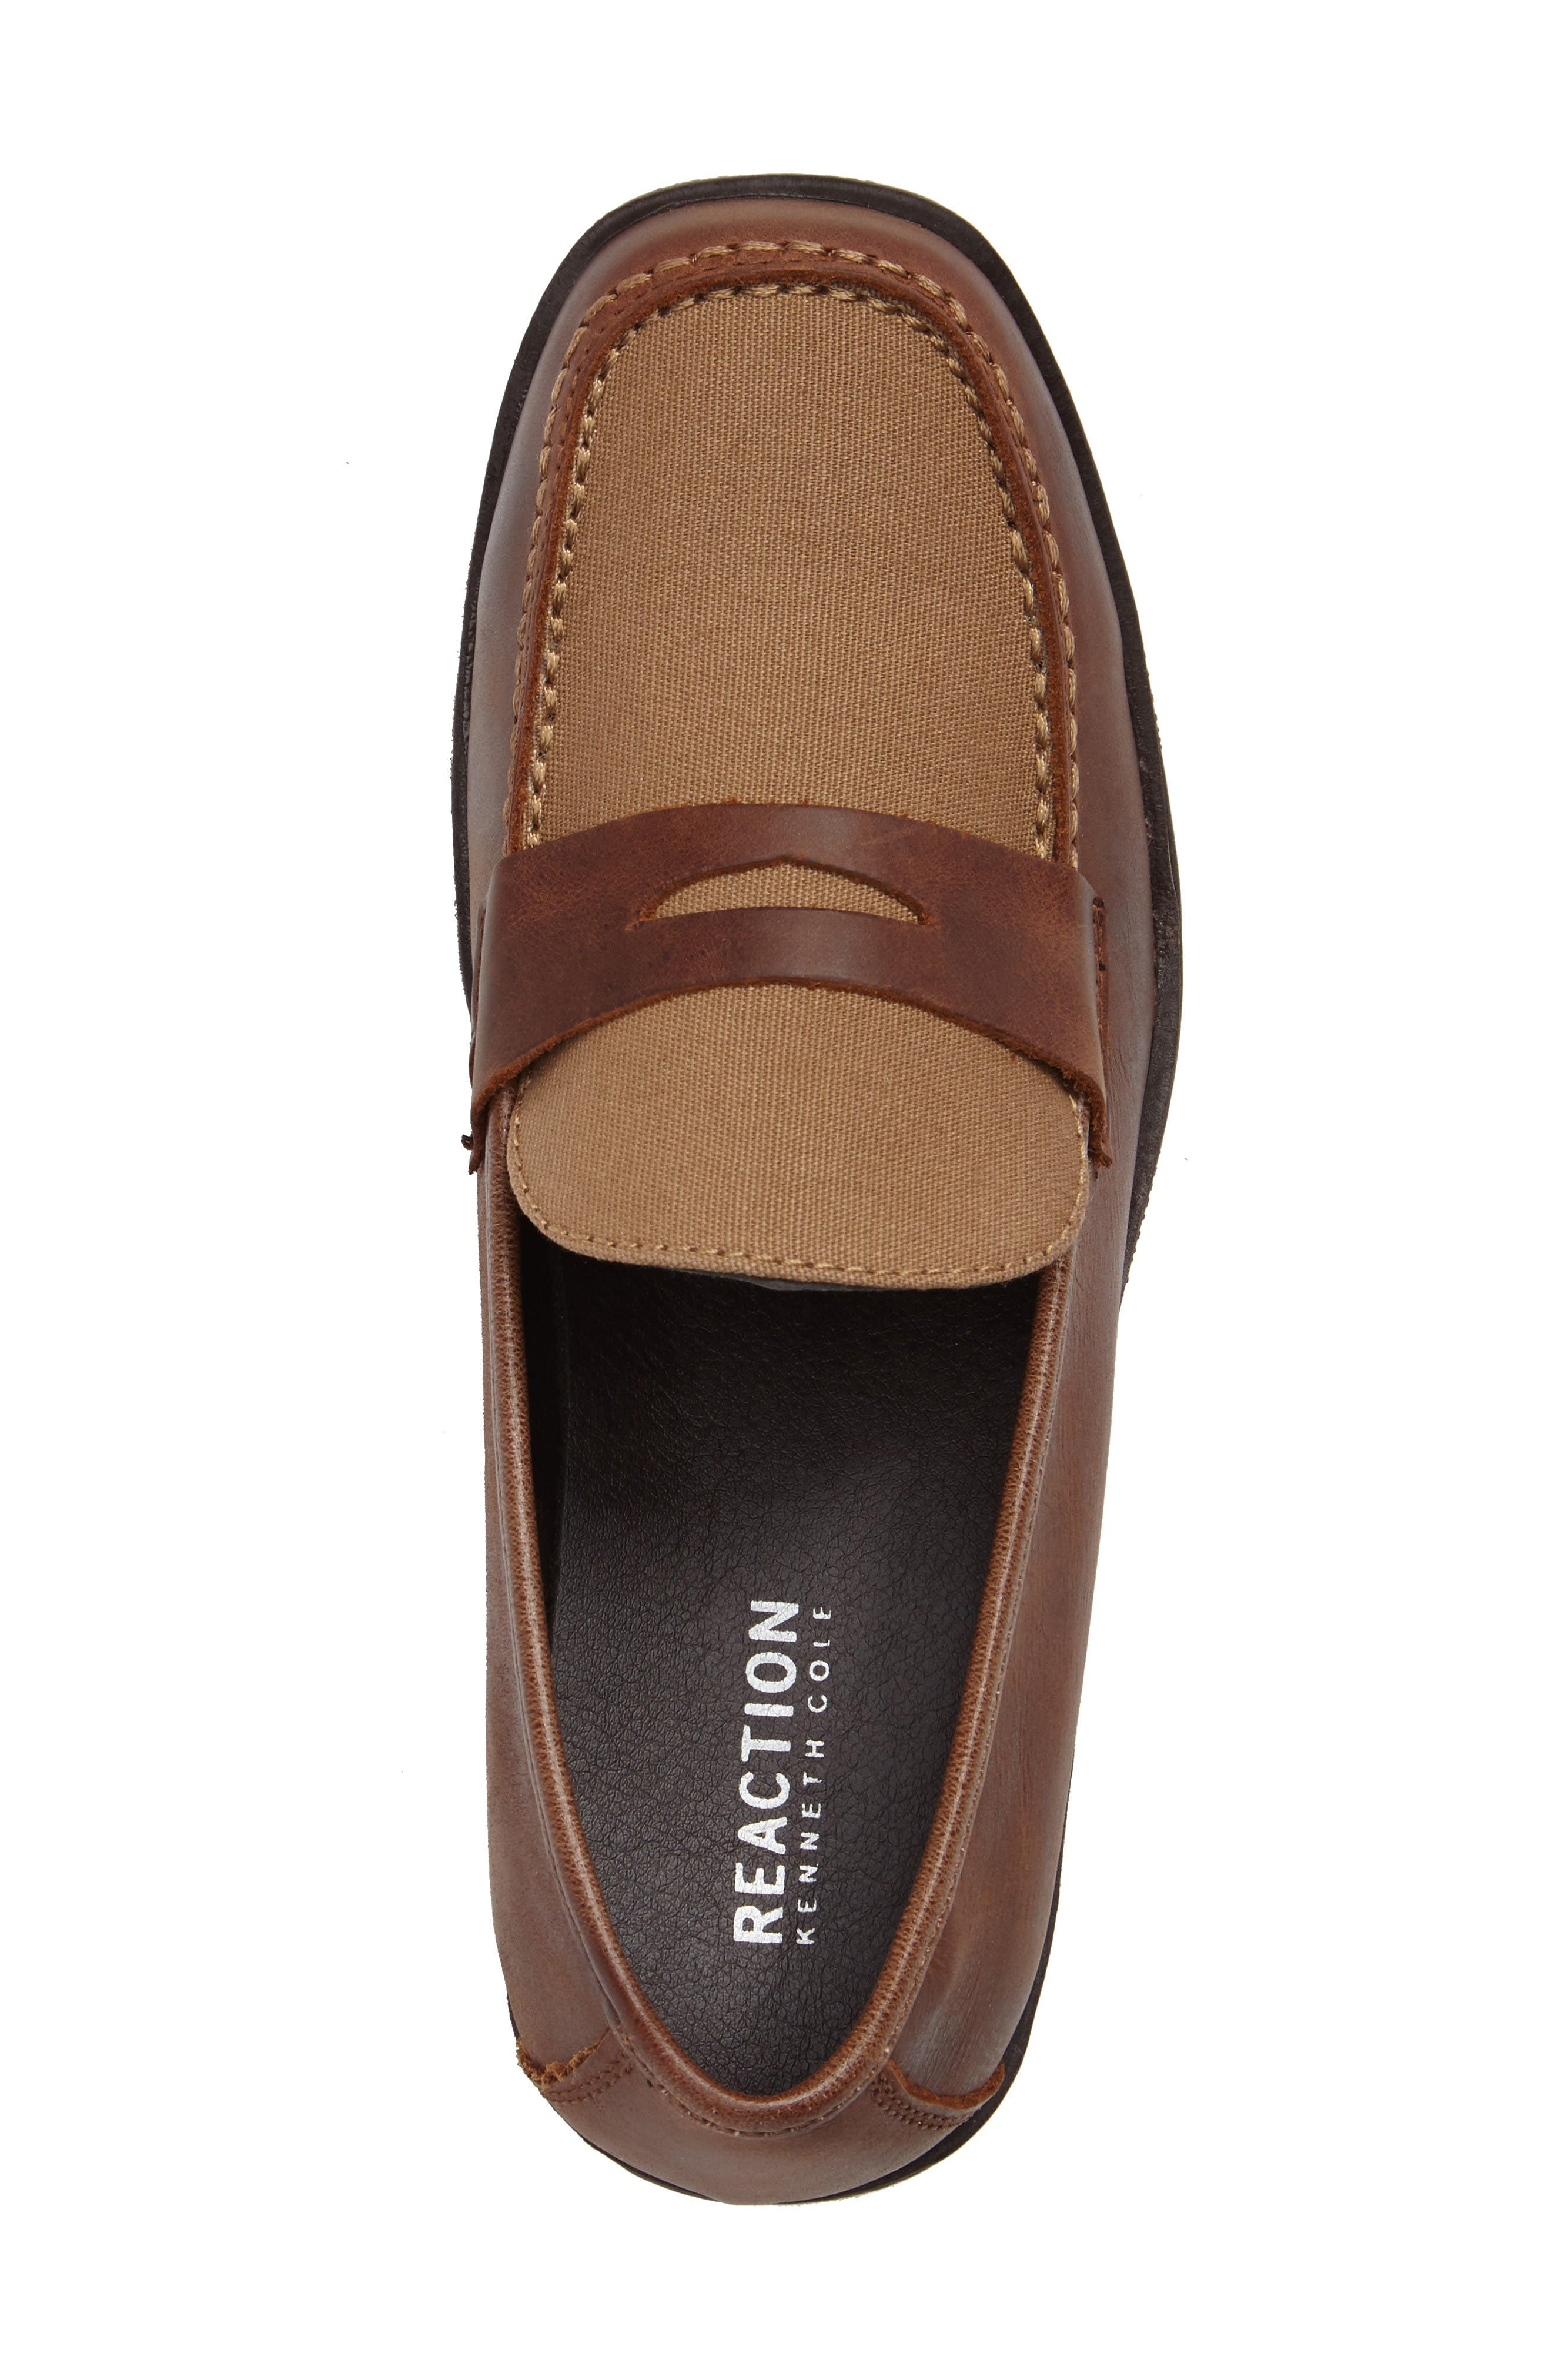 Club Loft Loafer,                             Alternate thumbnail 5, color,                             Tan/ Brown Leather